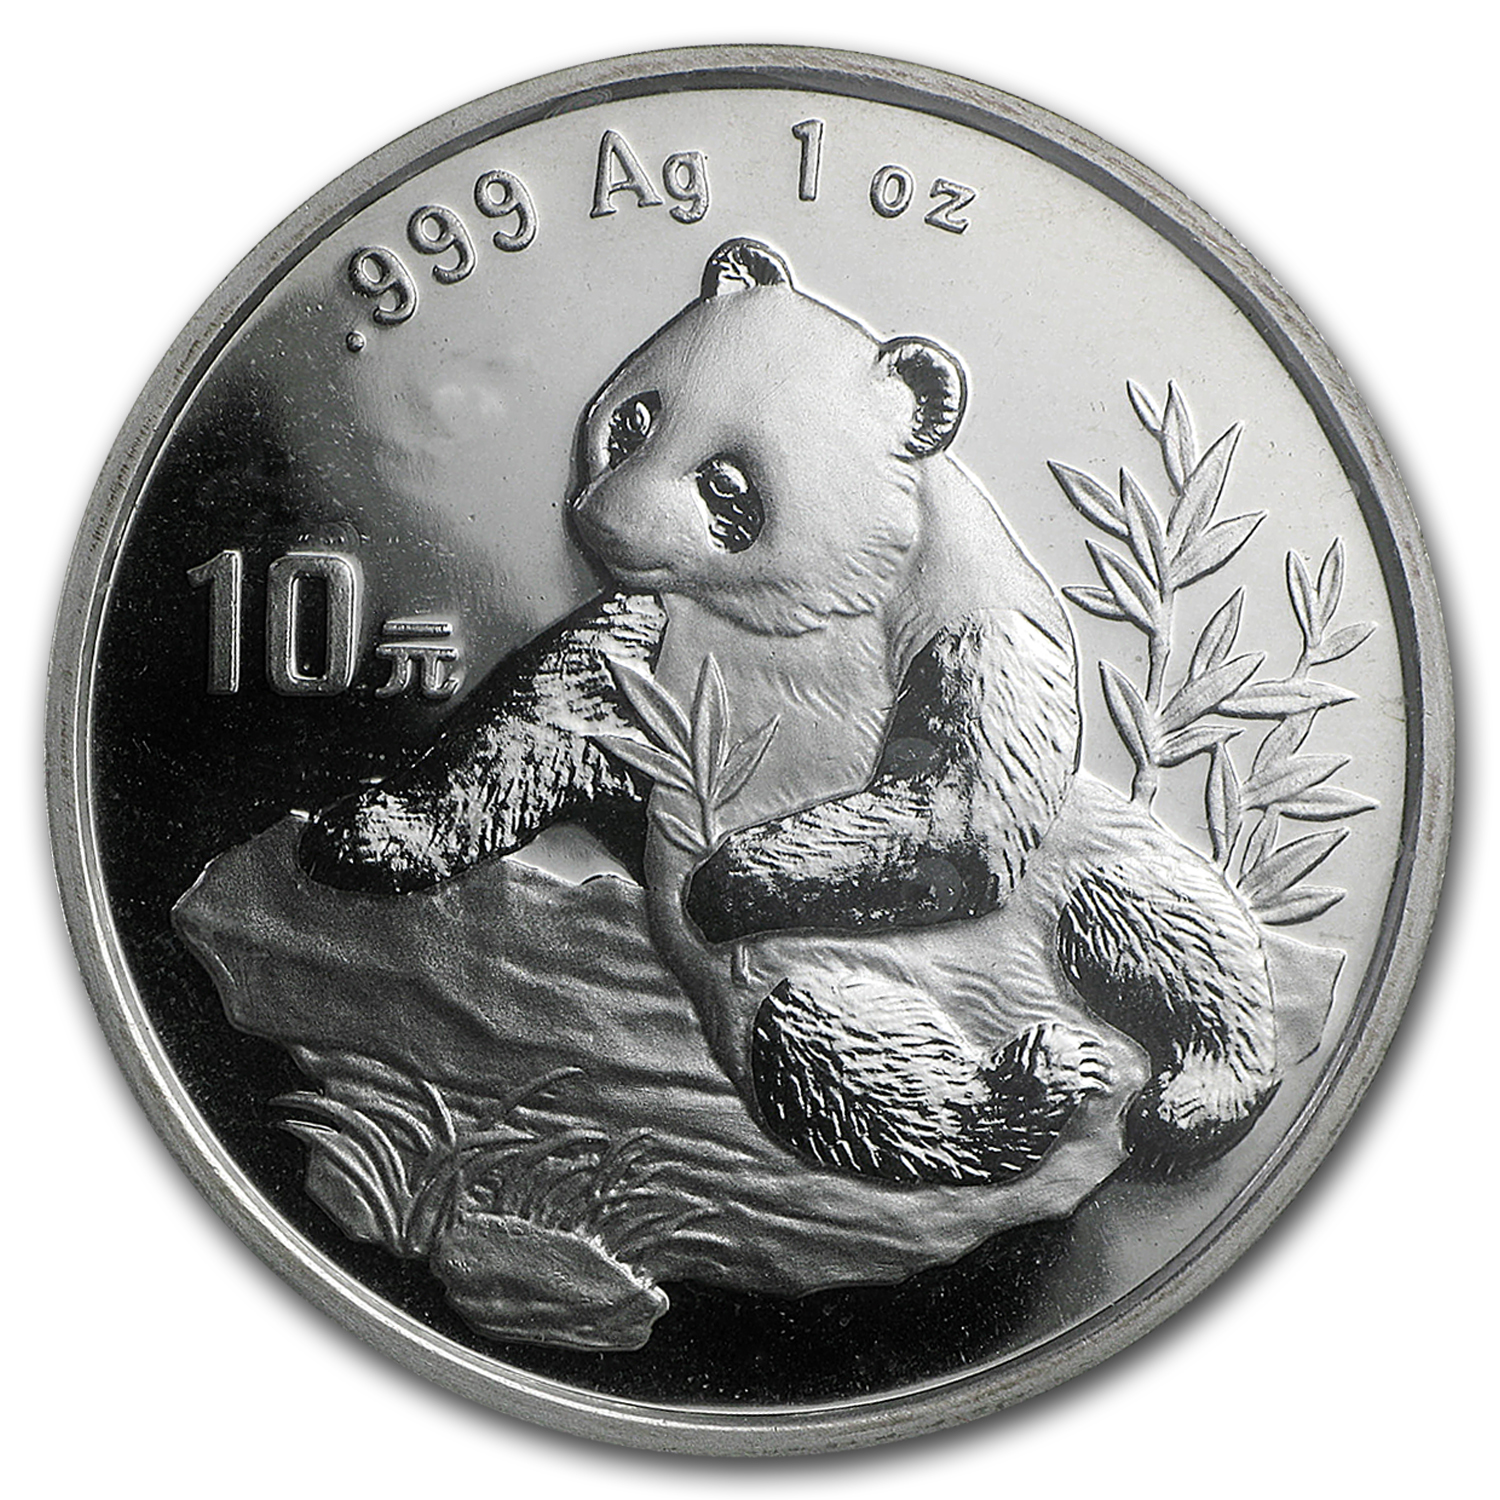 1998 1 oz Silver Chinese Panda - (Sealed) - Small Date